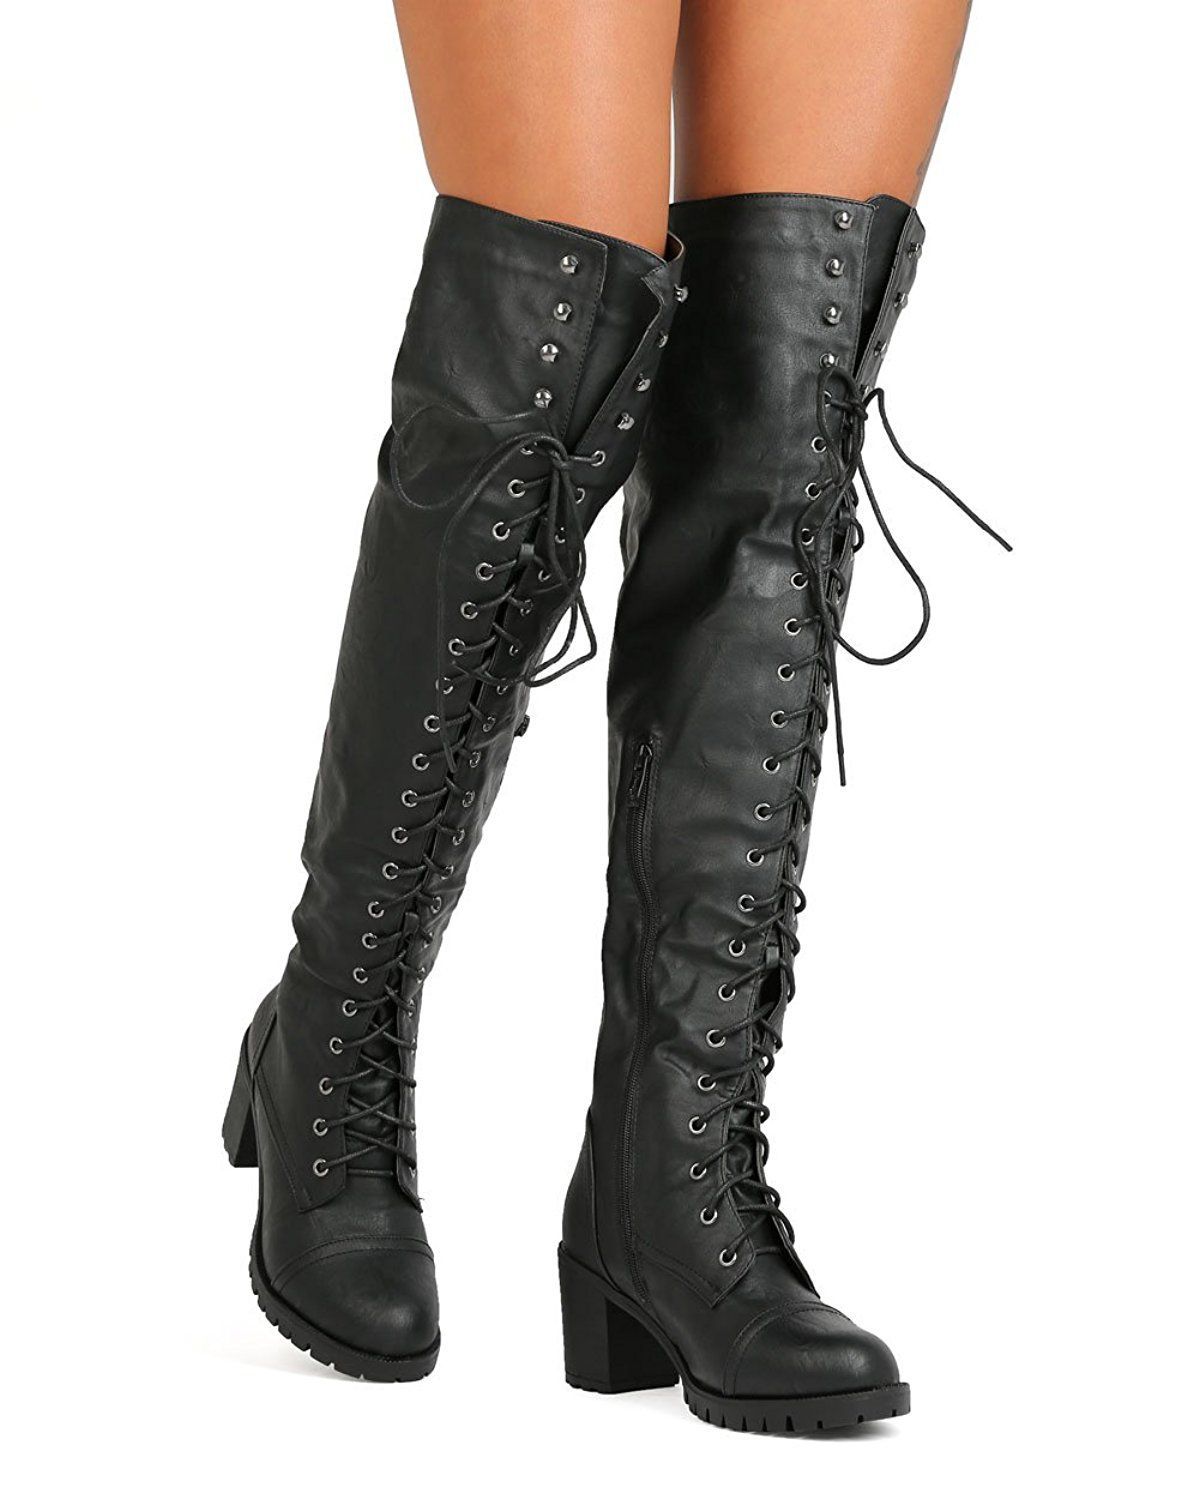 980a5b543a2 Nature Breeze FG06 Women Leatherette Over The Knee Chunky Heel Combat Boot  - Black    Review more details here   Over the knee boots